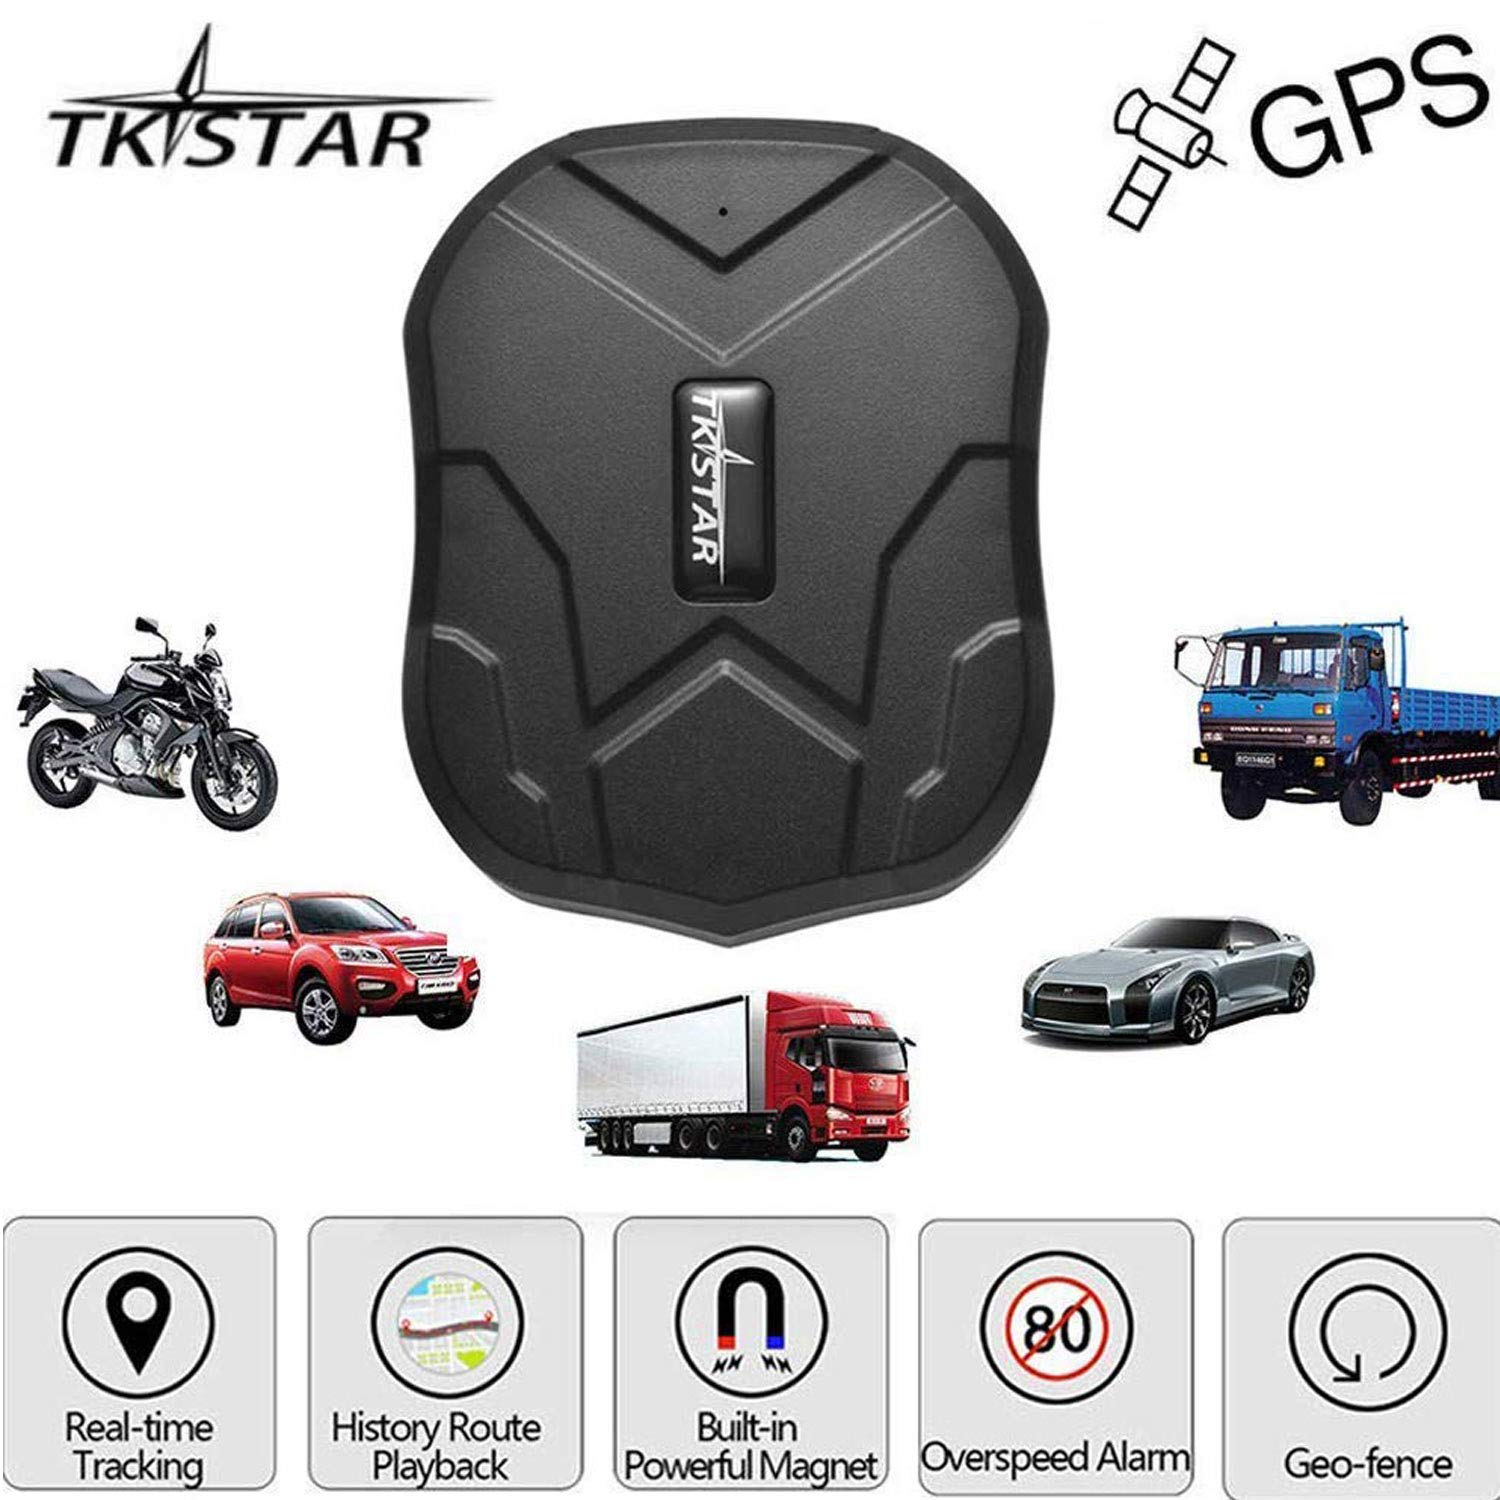 TKSTAR Hidden Vehicles GPS Tracker, Waterproof Real Time Vehicle GPS Tracker Anti Theft Alarm Car Tracking Device Strong Magnet For Motorcycle Trucks Support Android and IOS TK905 by TK-STAR